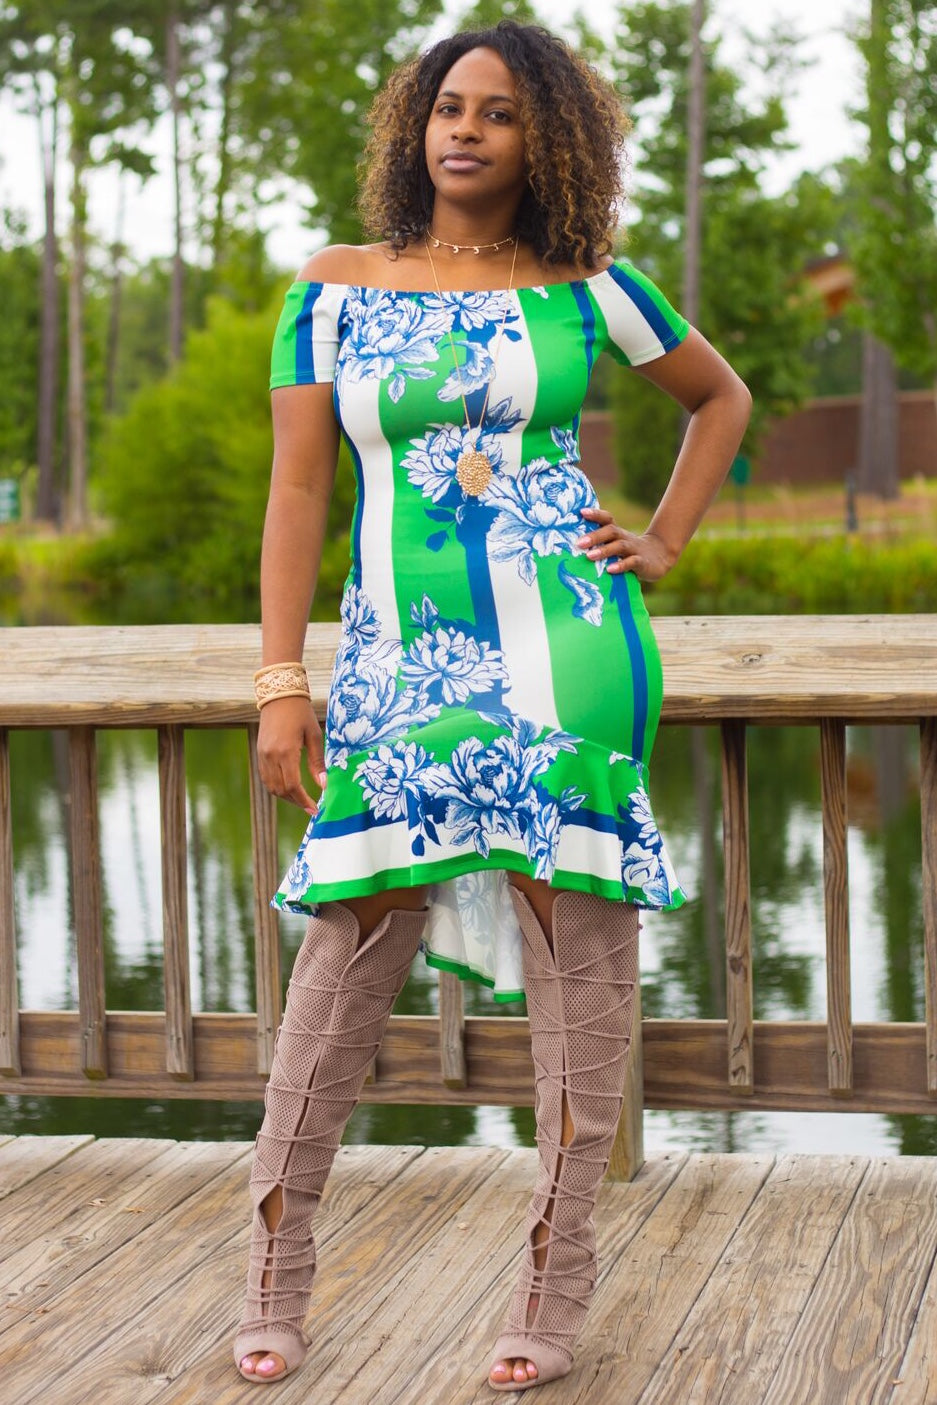 product_title],Dresses,Up most,SwankyBoutique LLC.